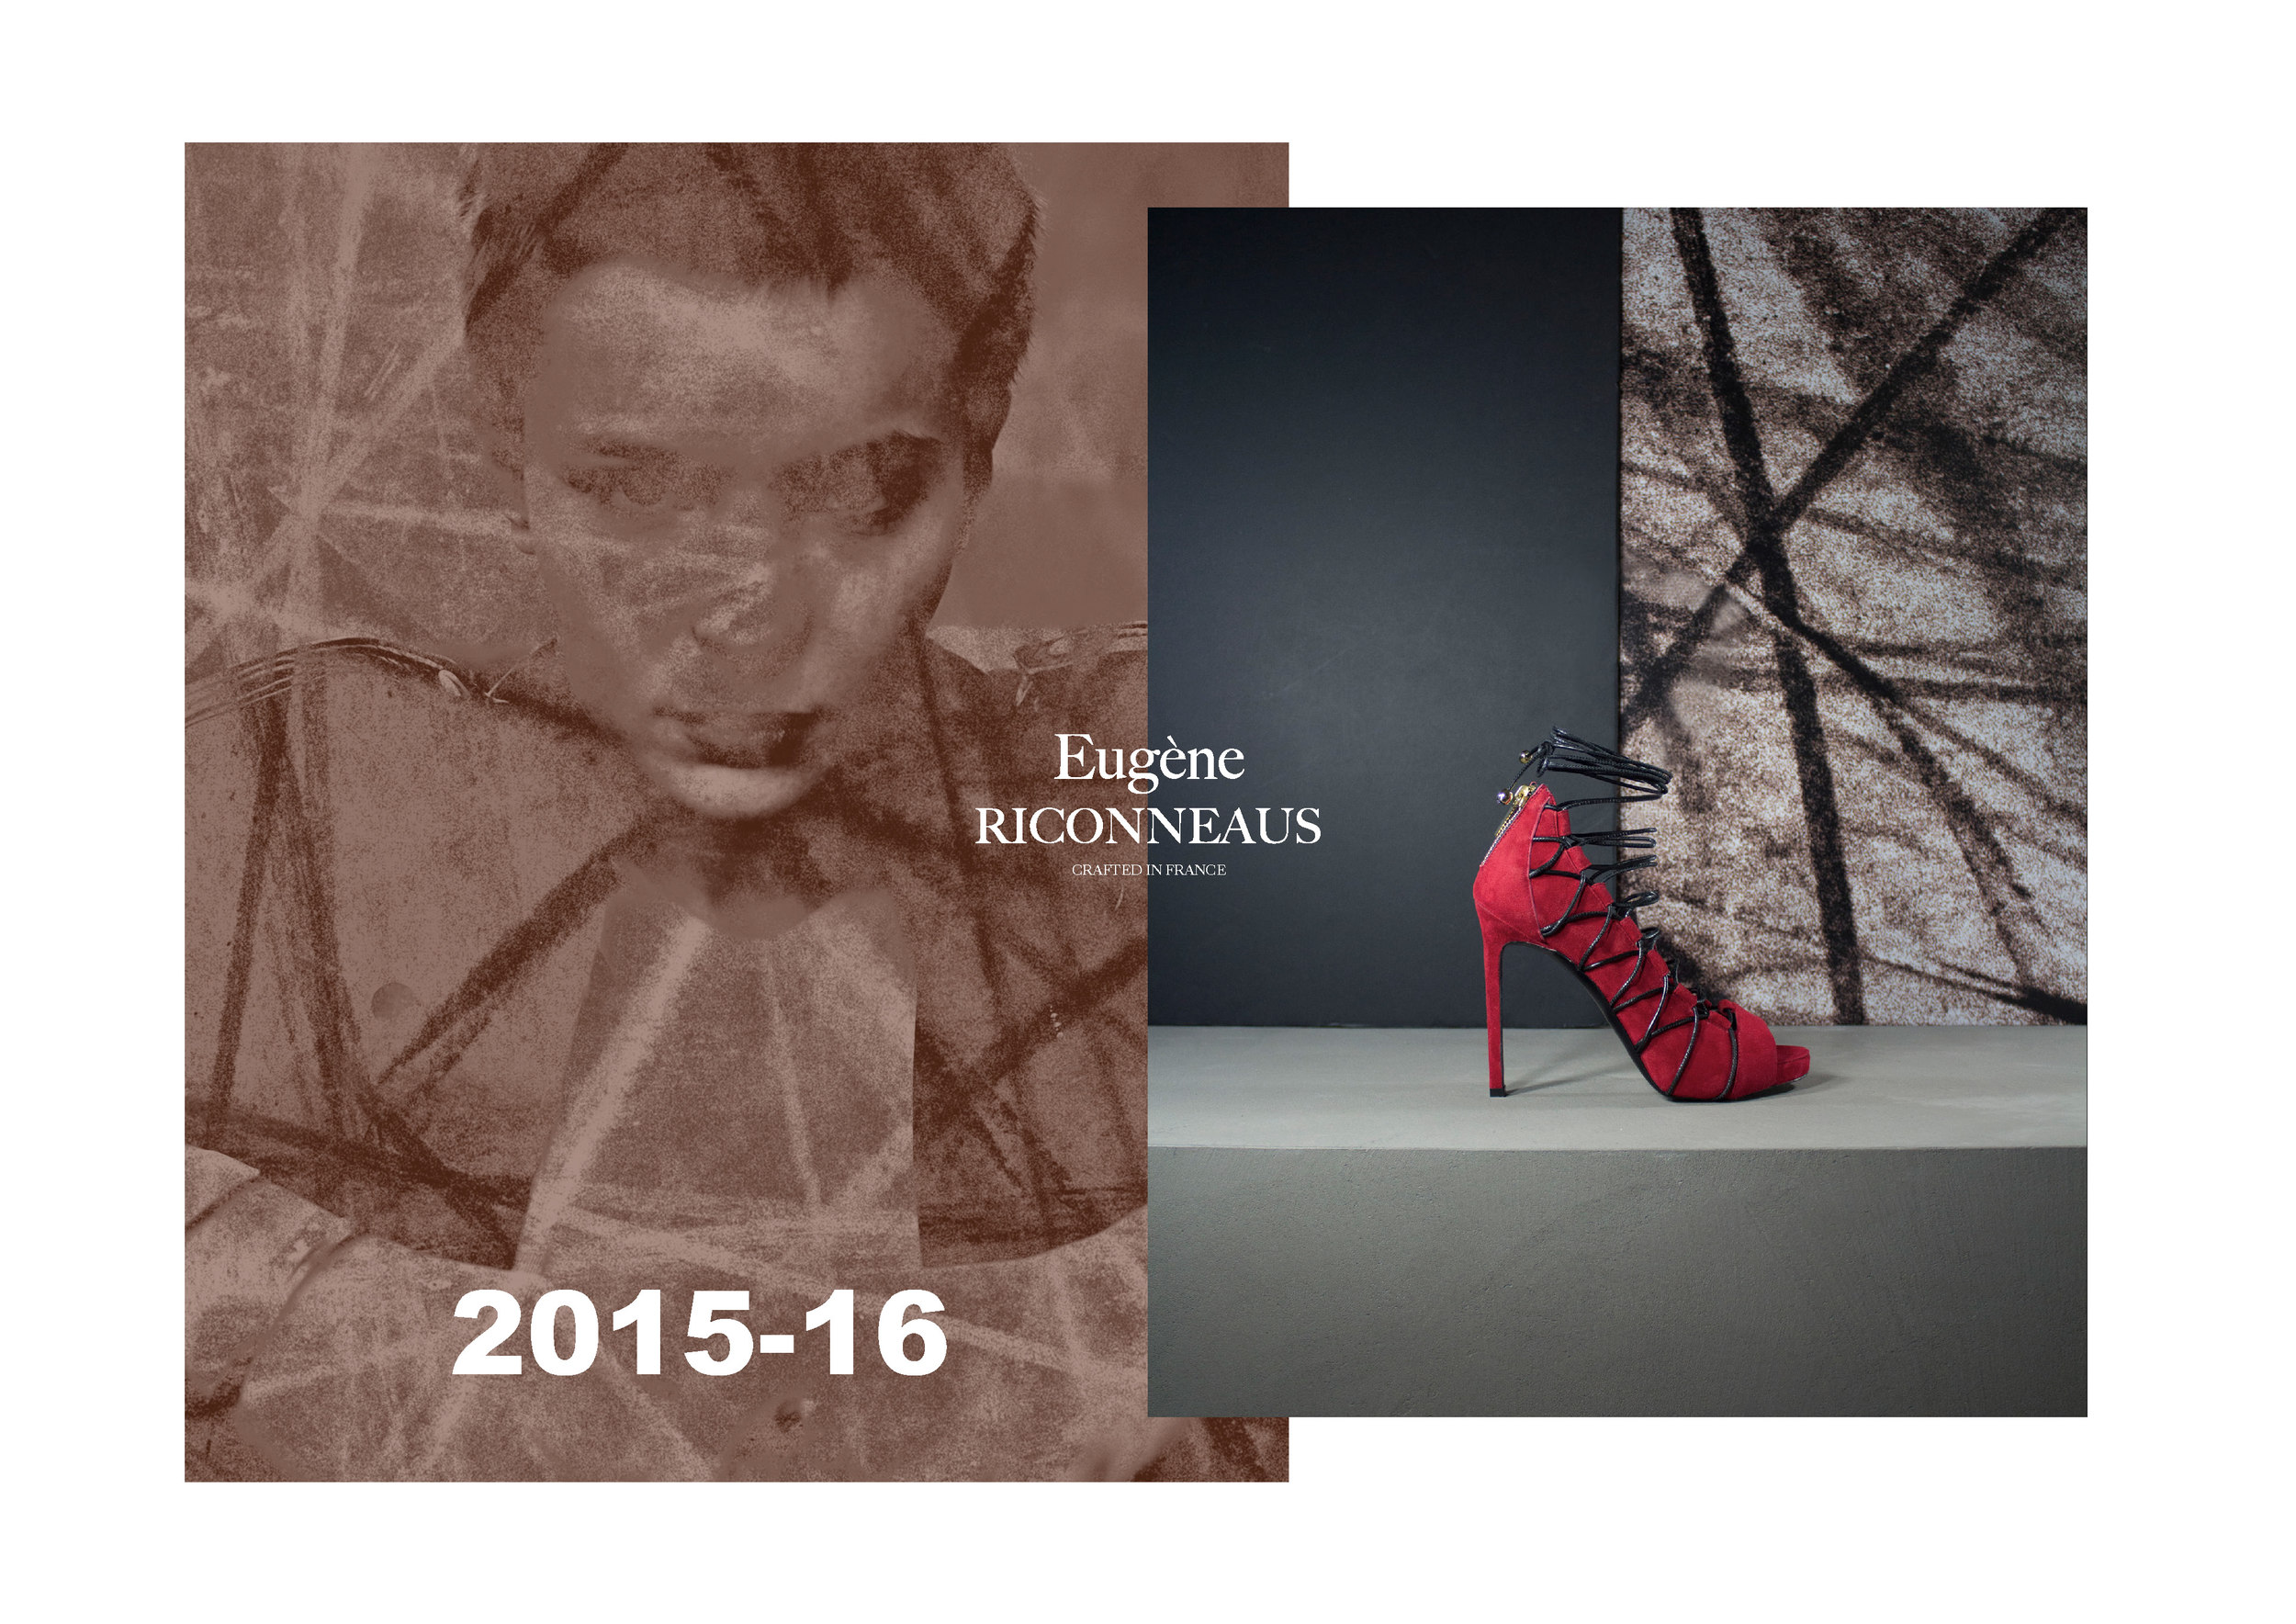 eugenericonneaus_main-aw15-16-high-w_Page_01.jpg